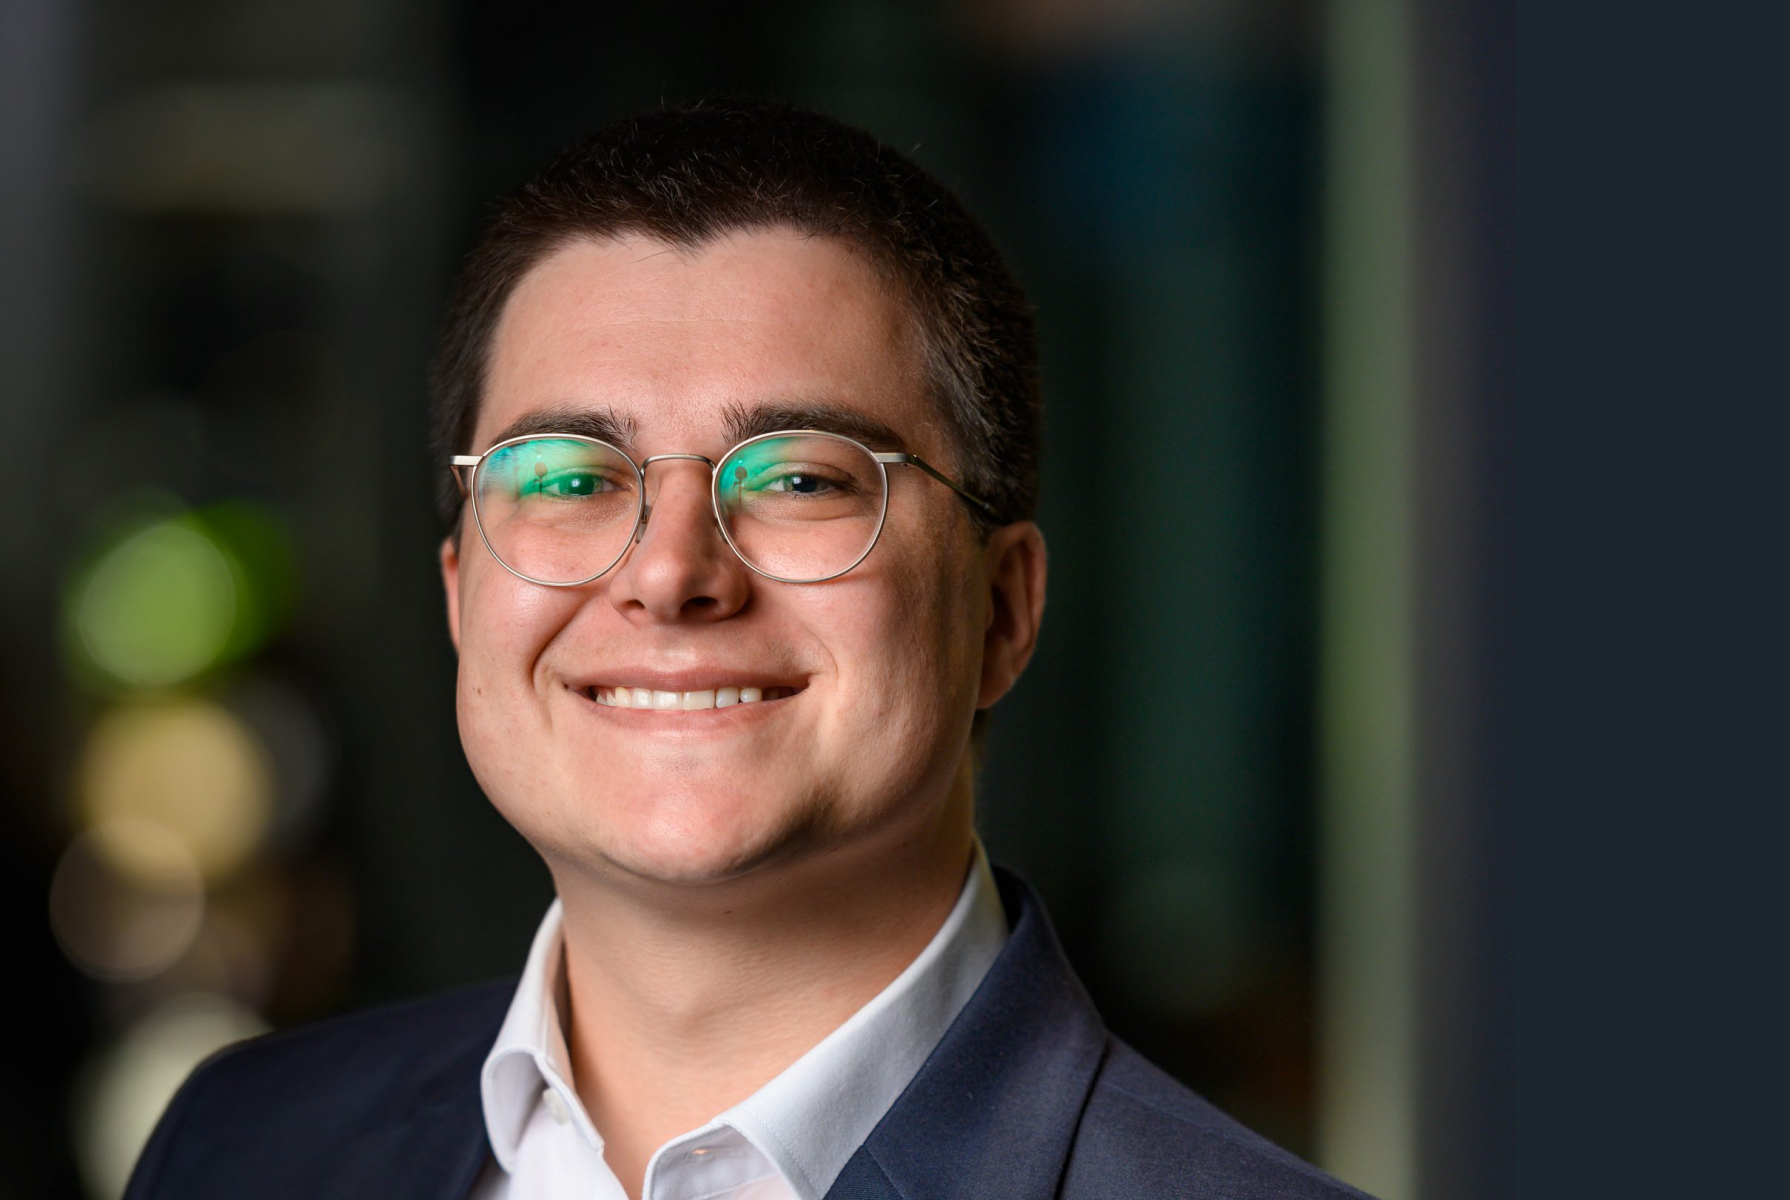 Josef could be stood up quickly, helping MinterEllison respond quickly to COVID-19, says Nathan Whinray, MinterEllison Legal Operations Graduate